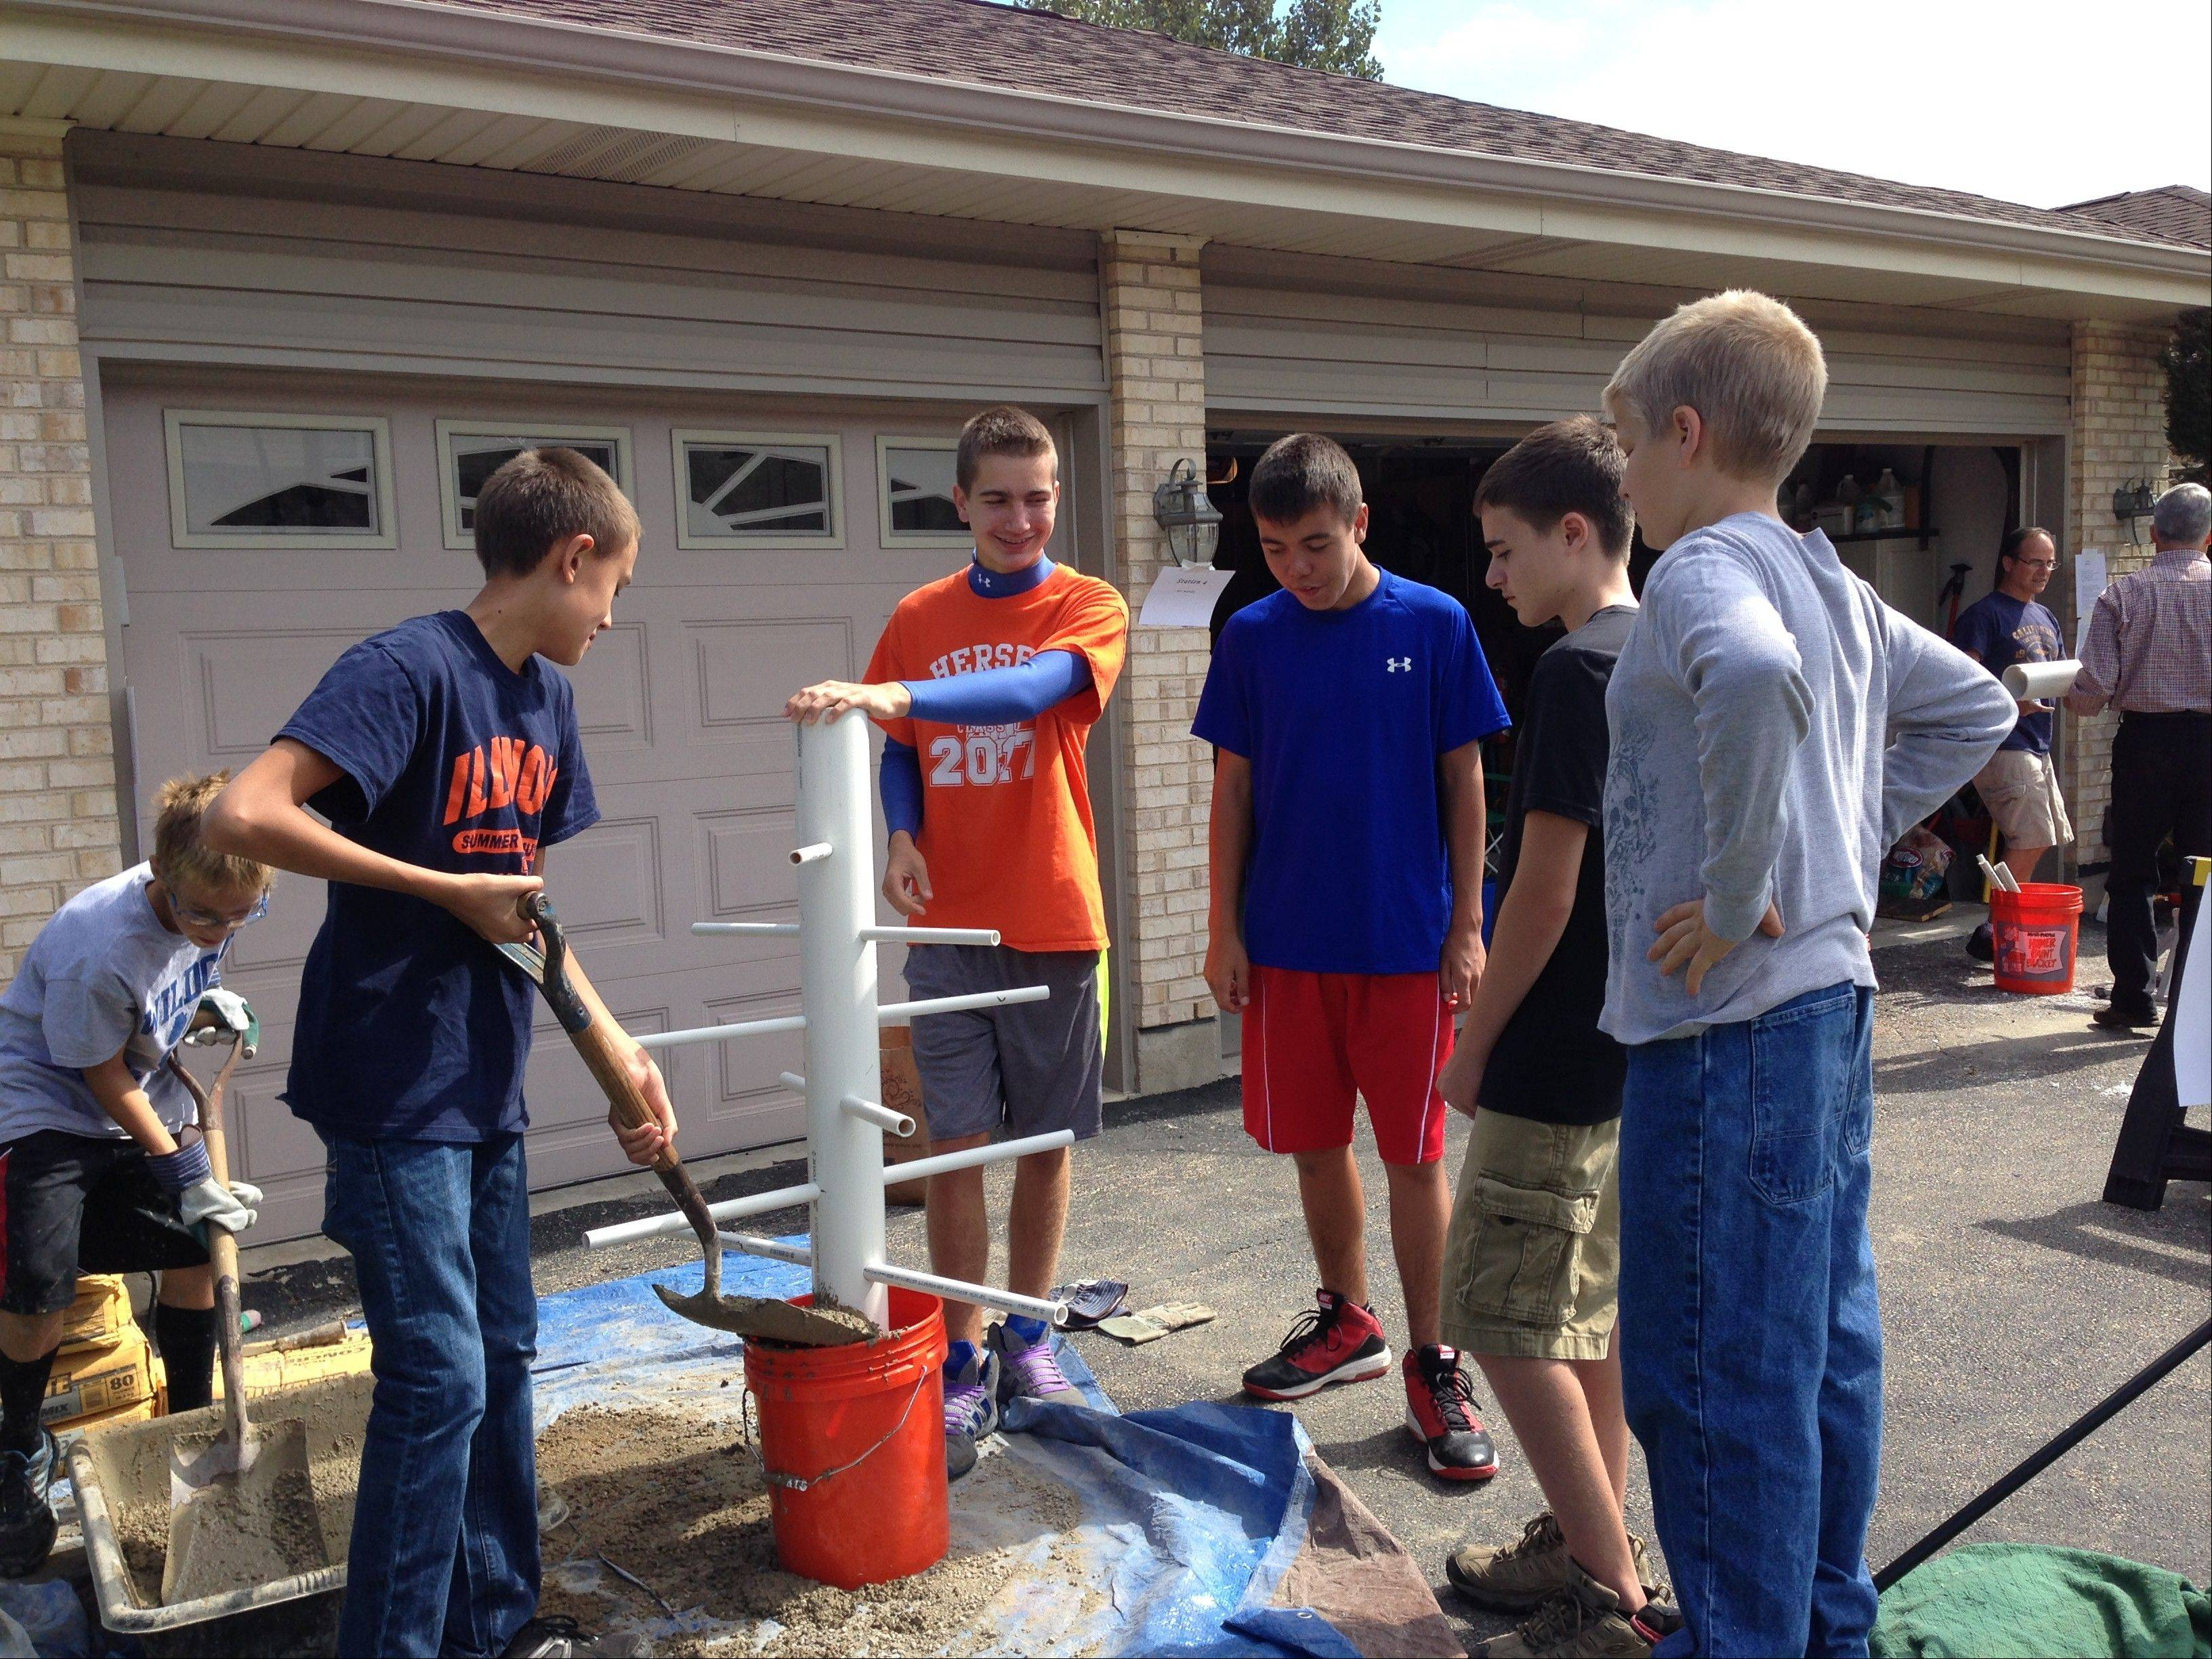 Cameron Sato, in the royal blue T-shirt, with friends who helped him build fish cribs that Cameron later installed at Axehead Lake and Belleau Lake in Des Plaines as part of an Eagle Scout project. The cribs give smaller, growing fish protection from larger predators.